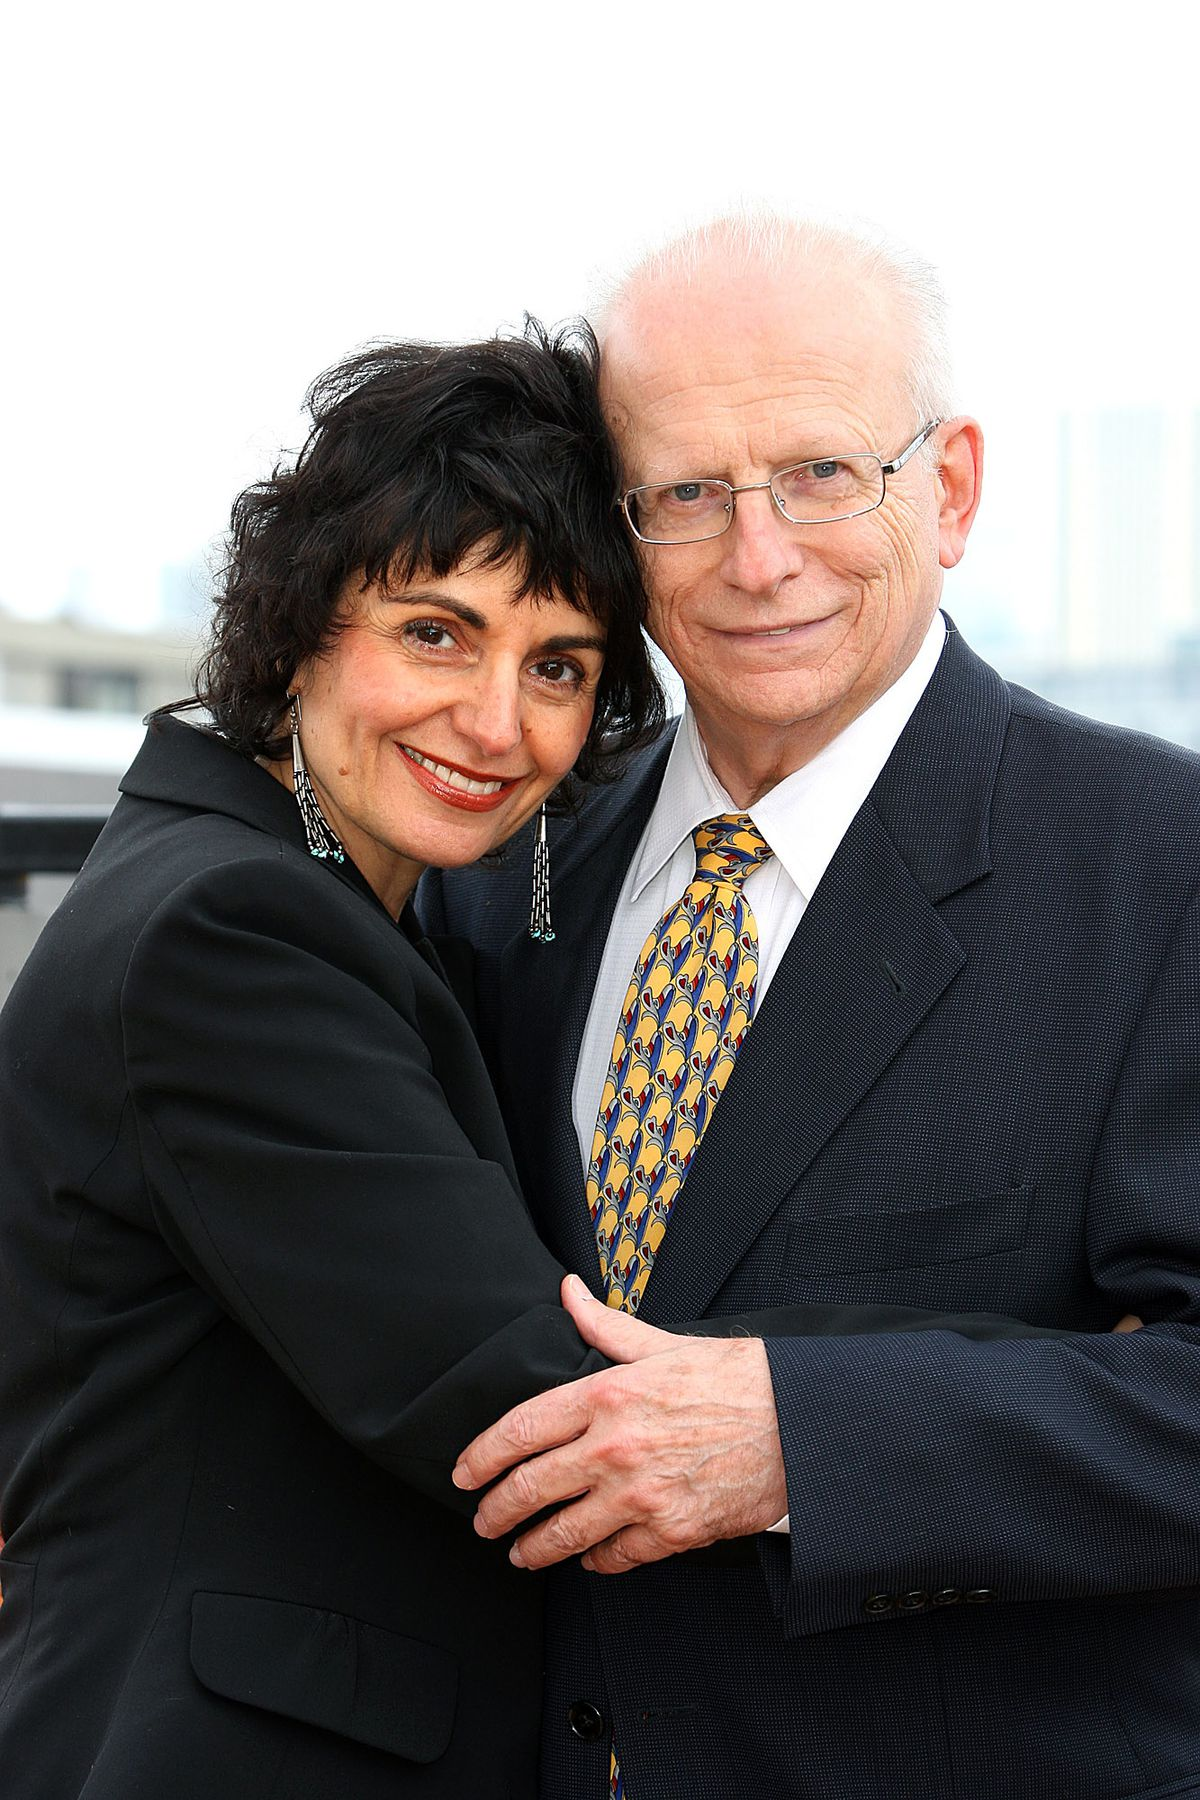 Bill Becker and Lauralea Suess, his second wife.